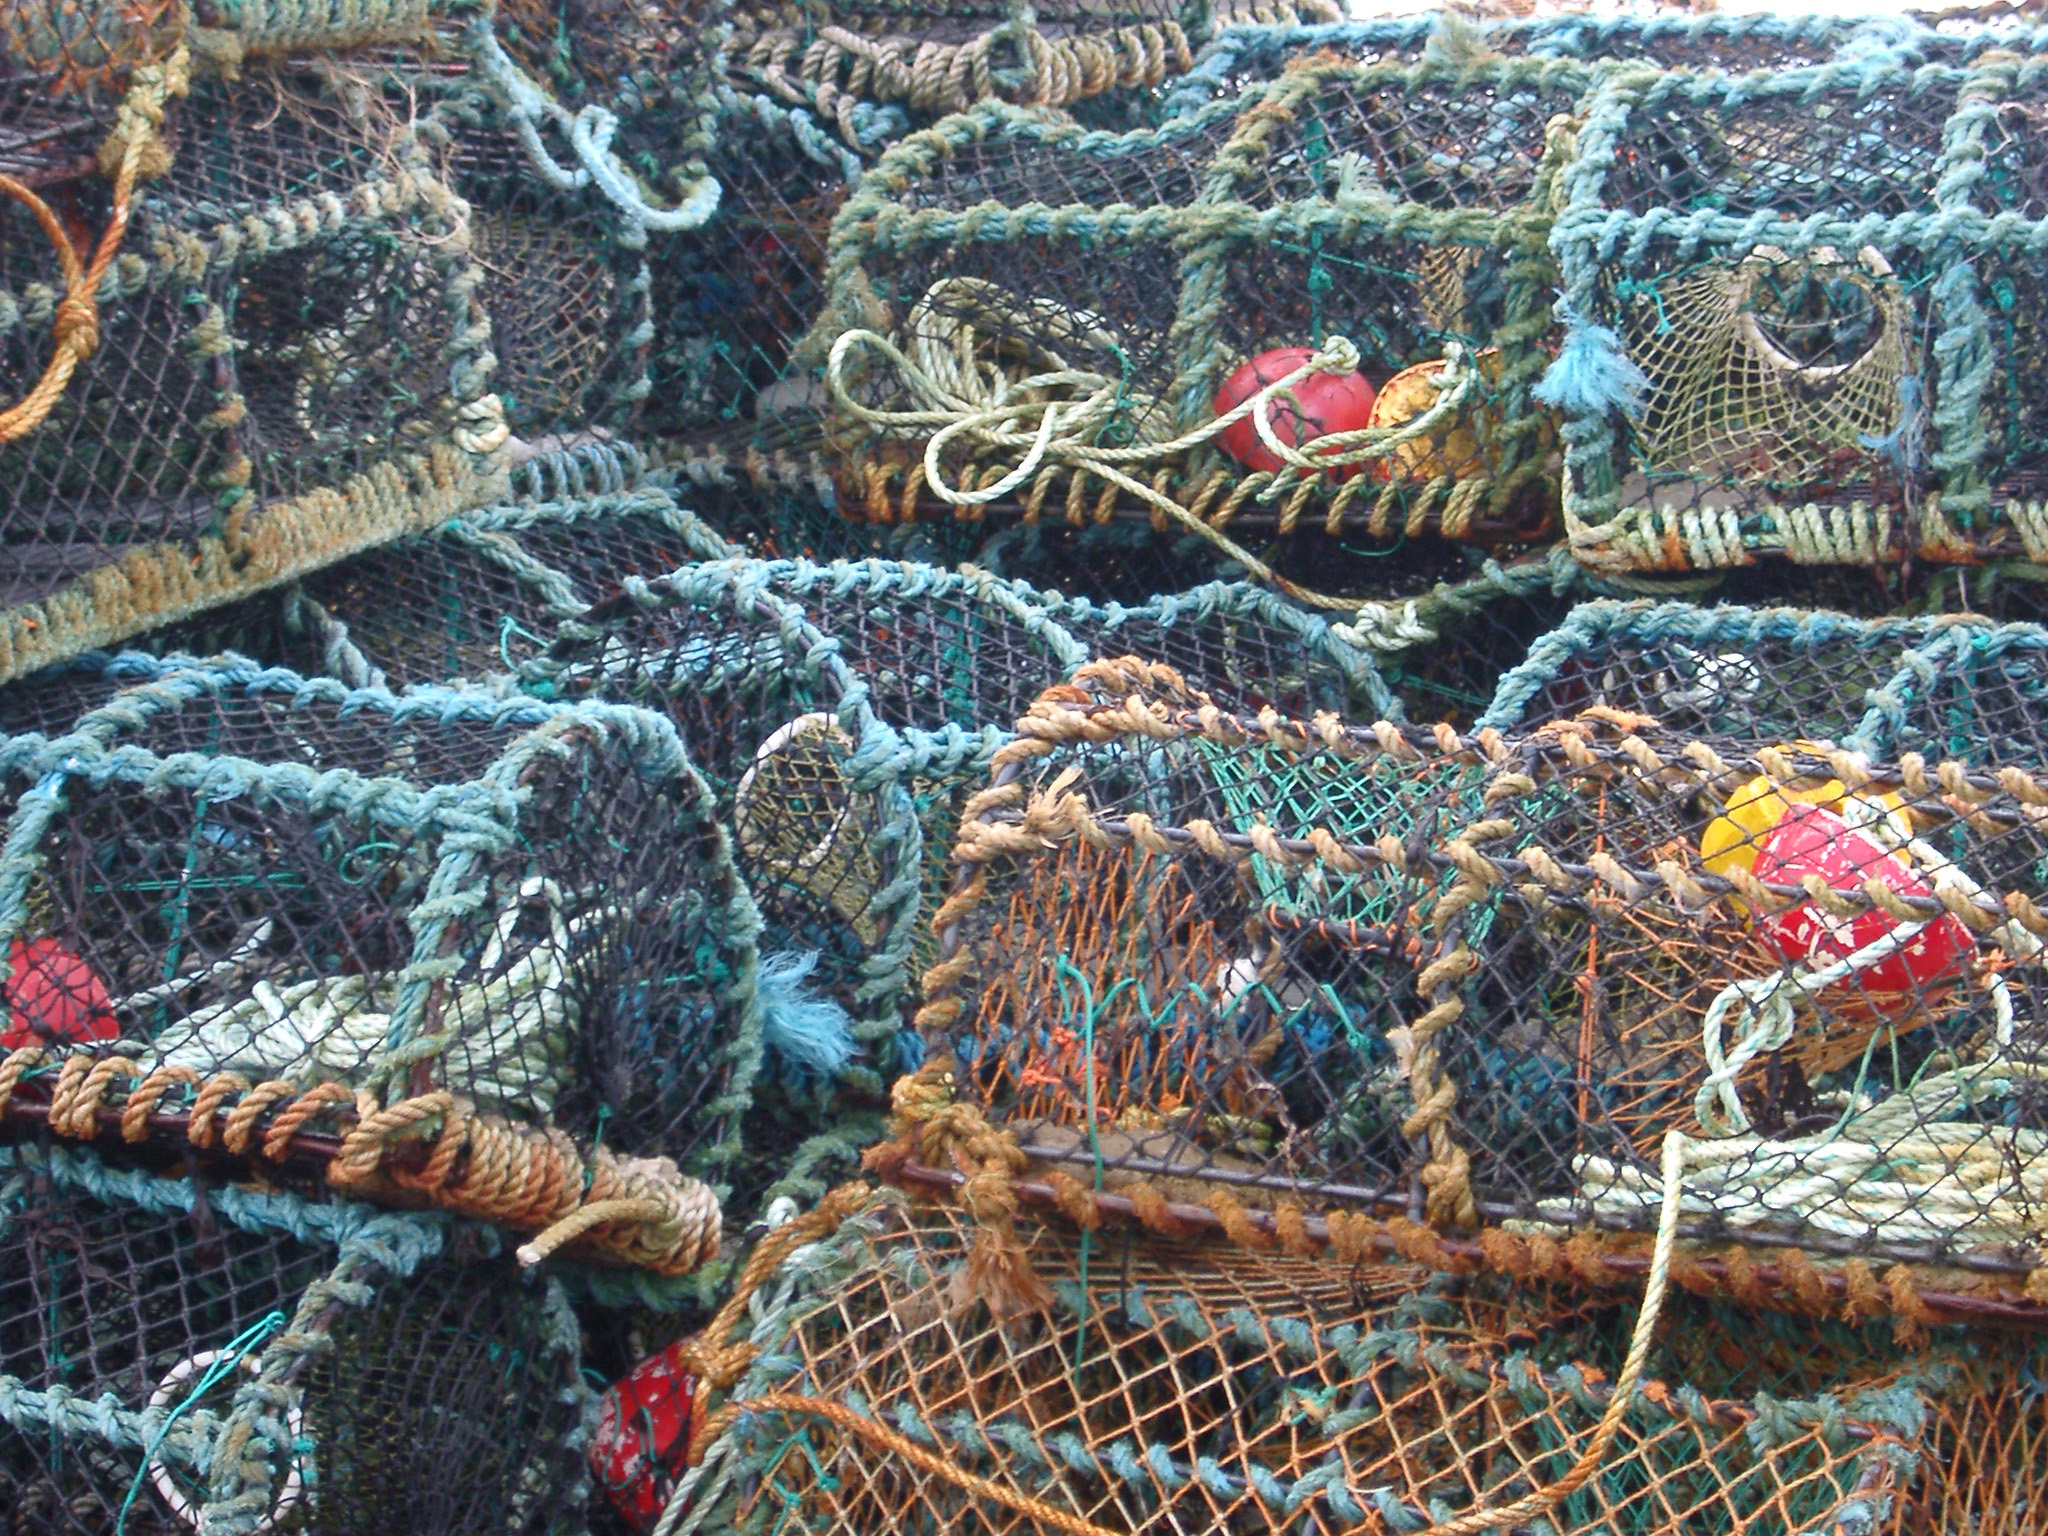 Background of old cylindrical wire mesh crab or lobster pots piled ashore waiting to be lowered into the sea for fishing